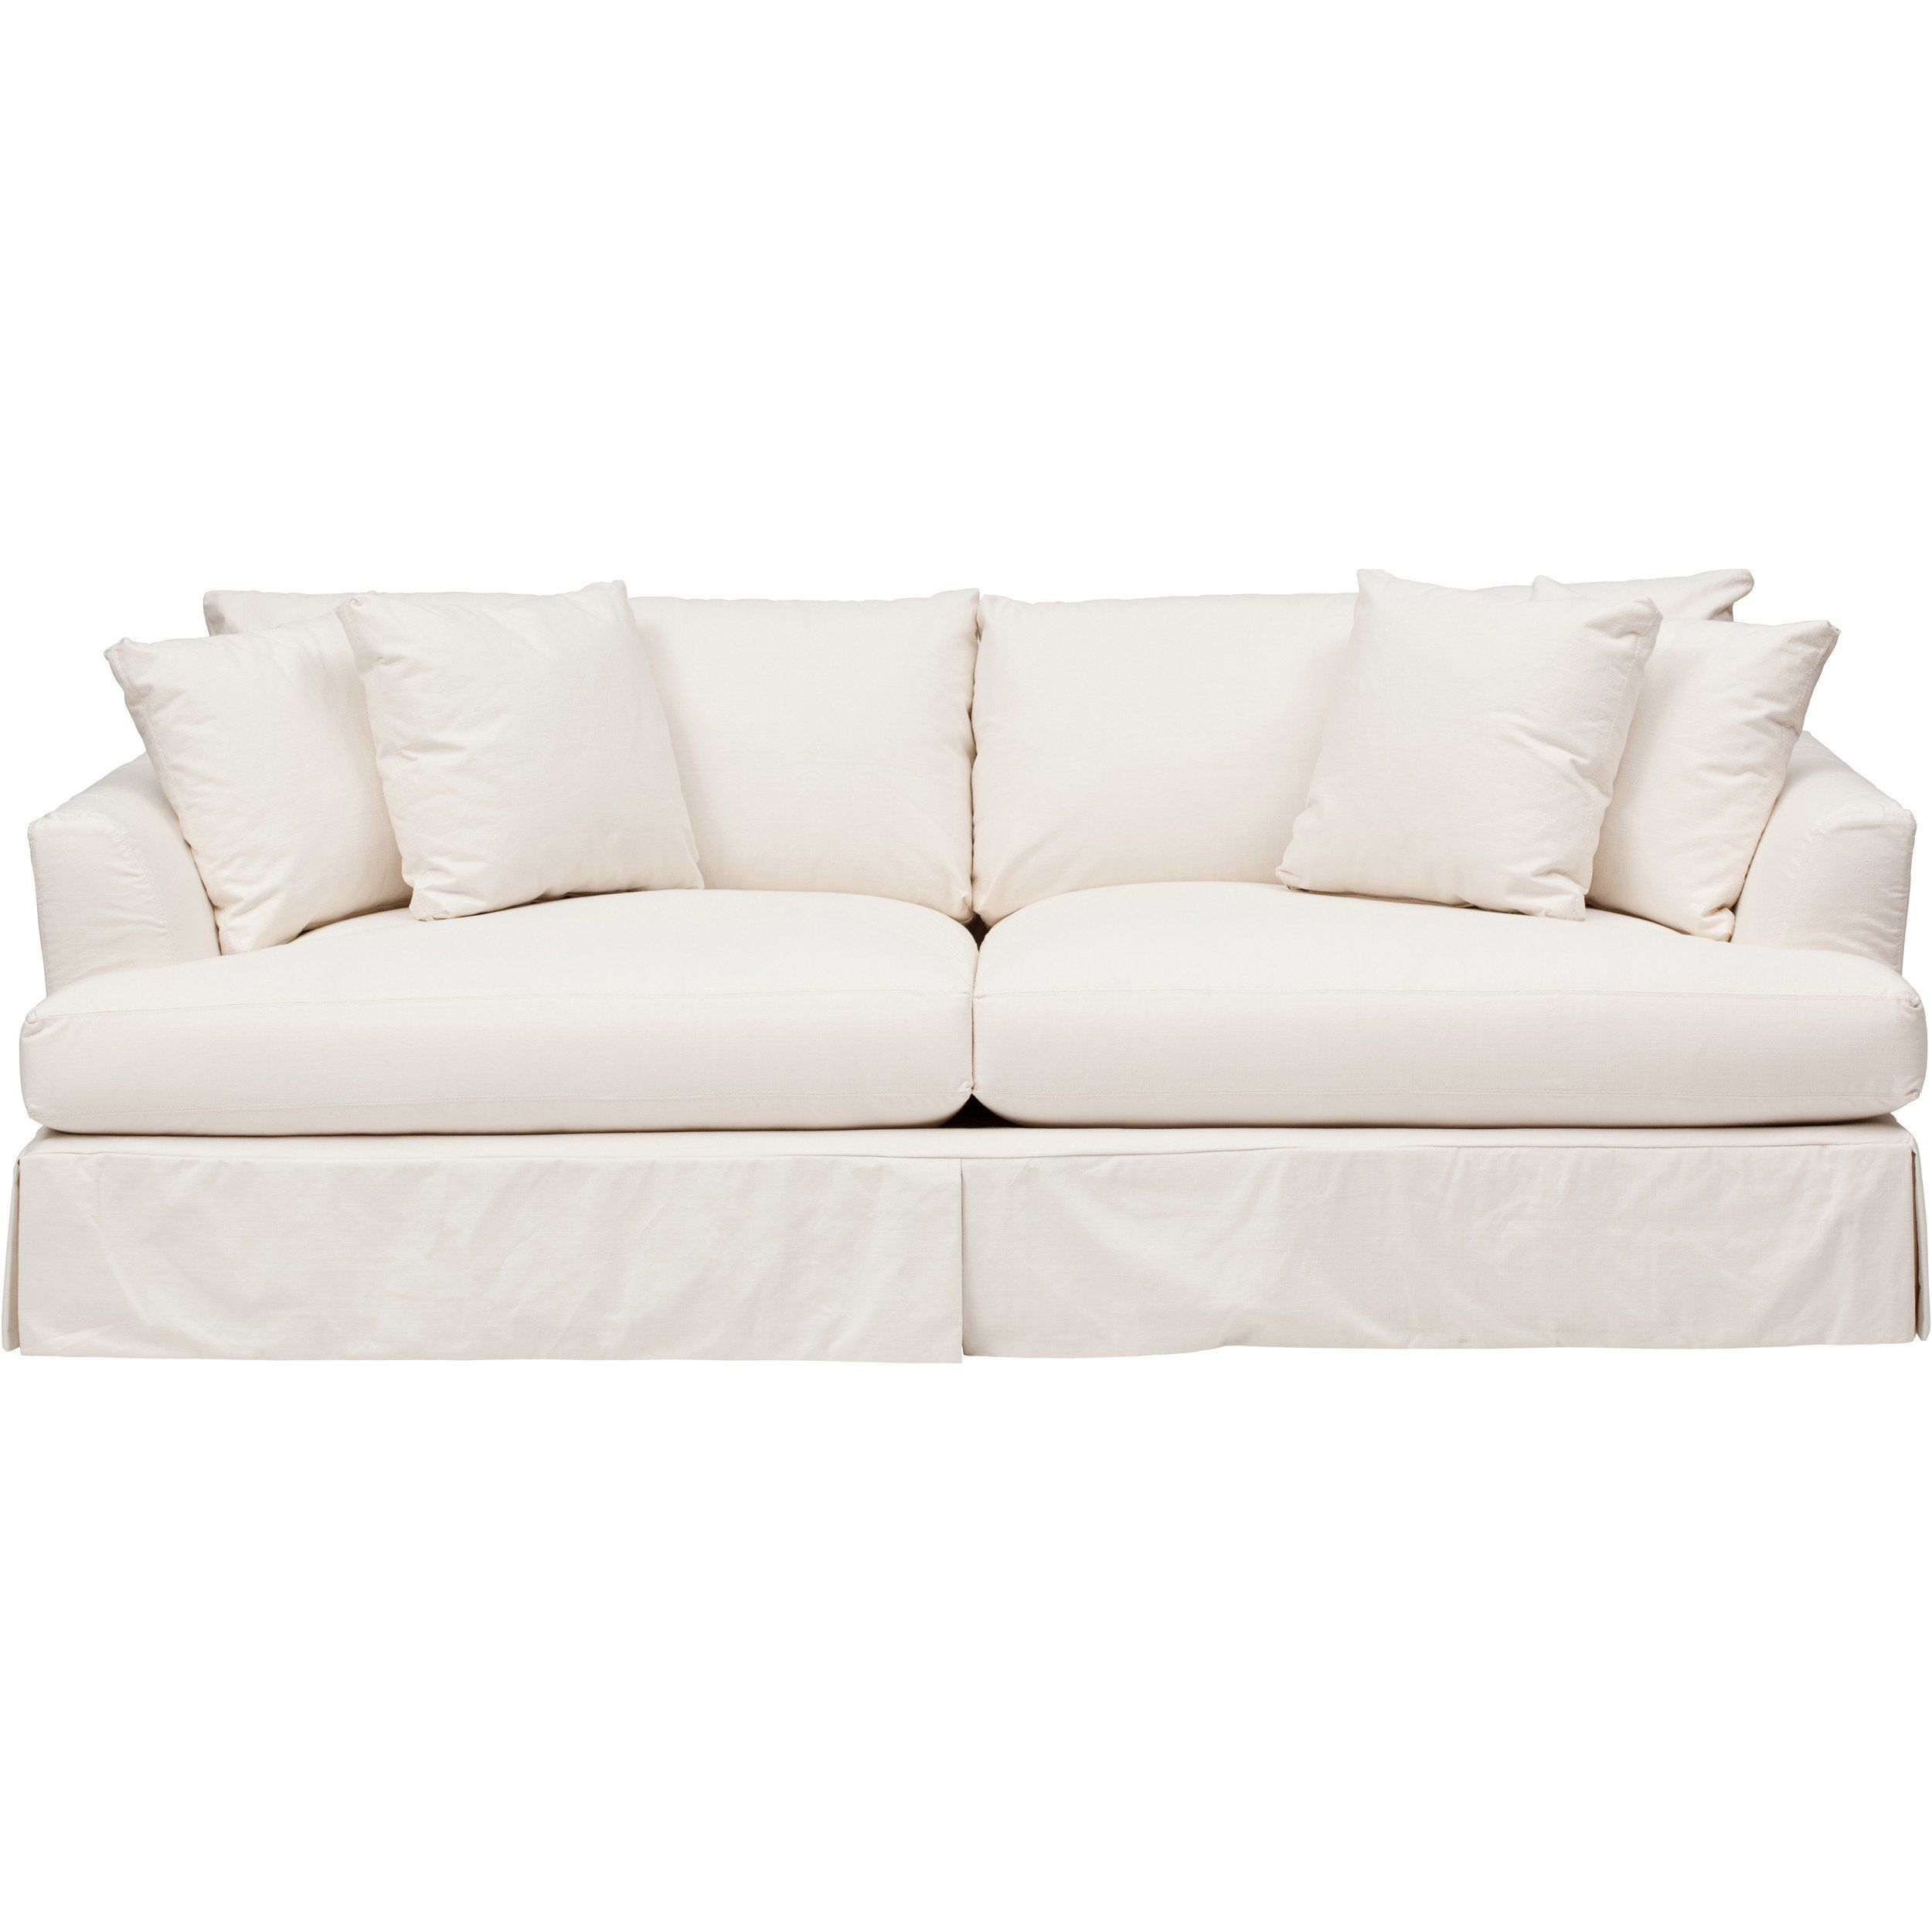 furniture exquisite wayfair slipcovers on slipcover inside mforum ca within sofa love excellent you ll